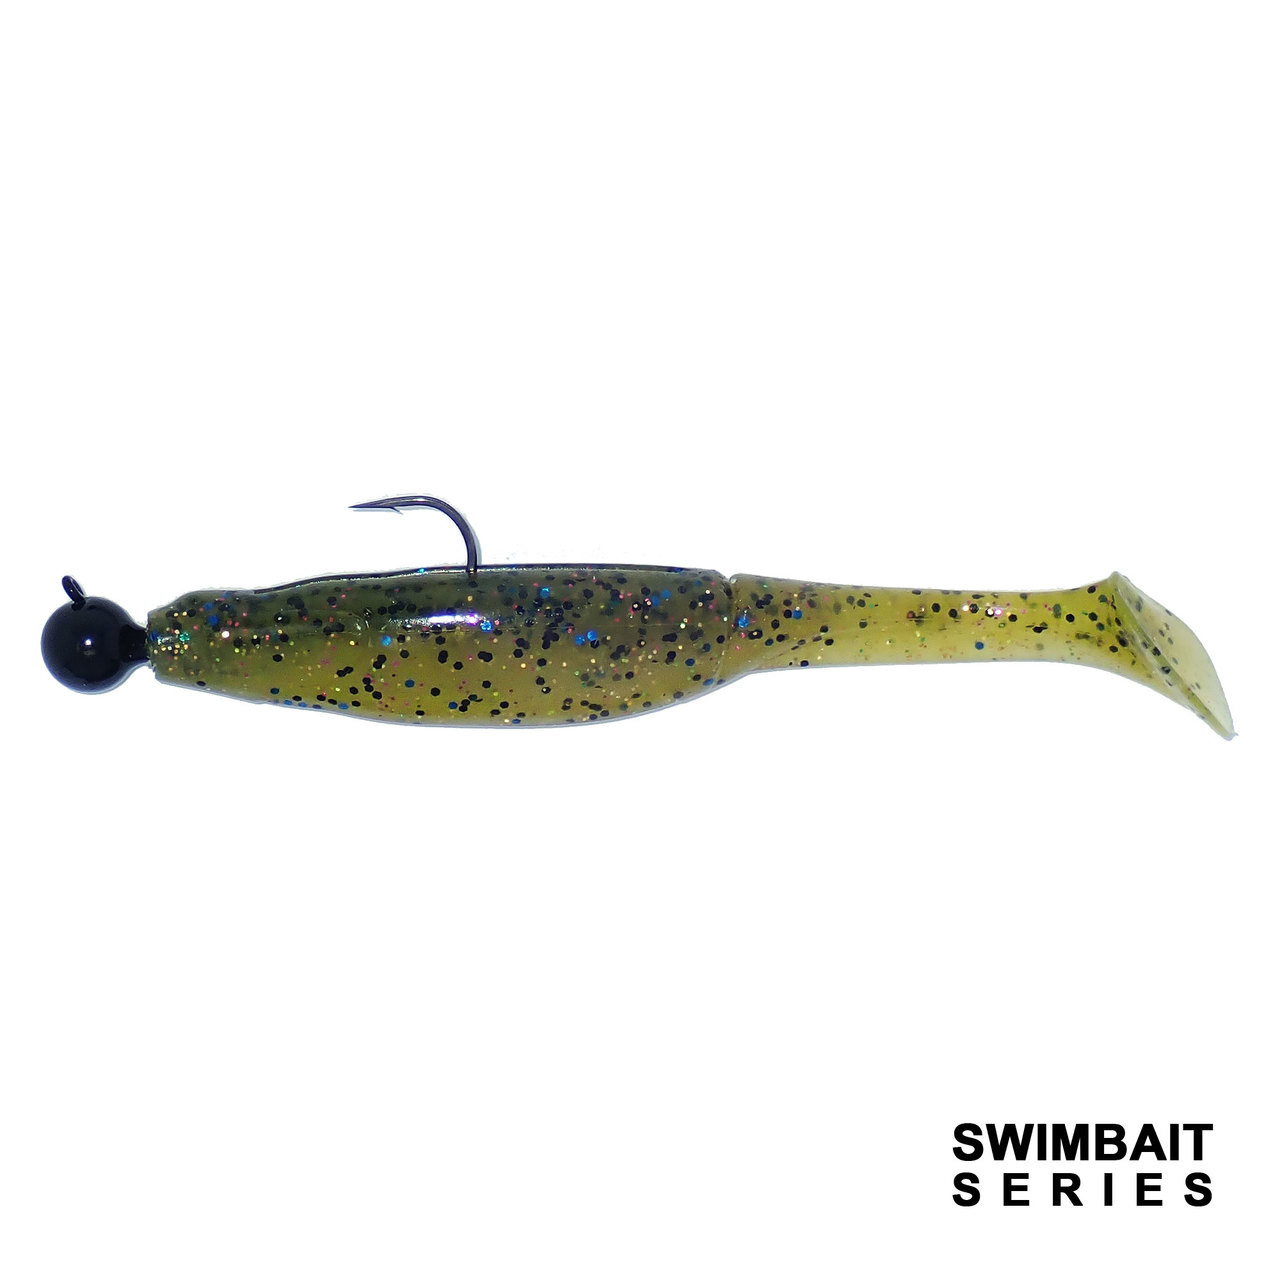 Swimbait - 6 inch - Bluegill (3pk)